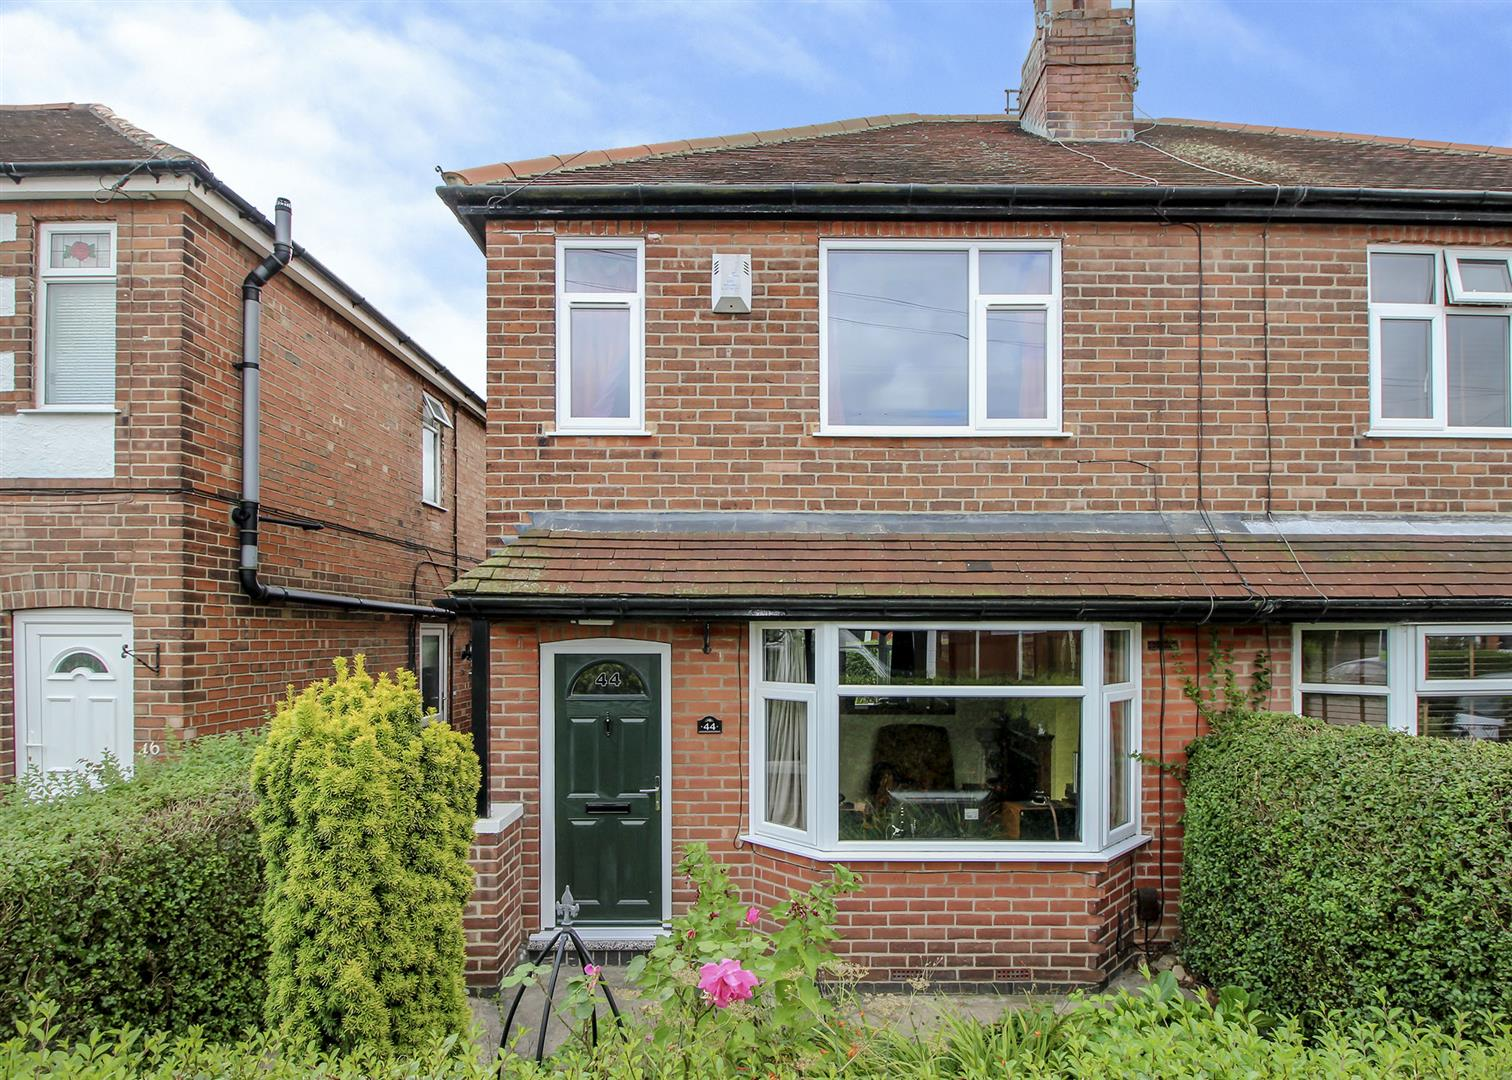 2 Bedrooms House for sale in Trowell Grove, Trowell